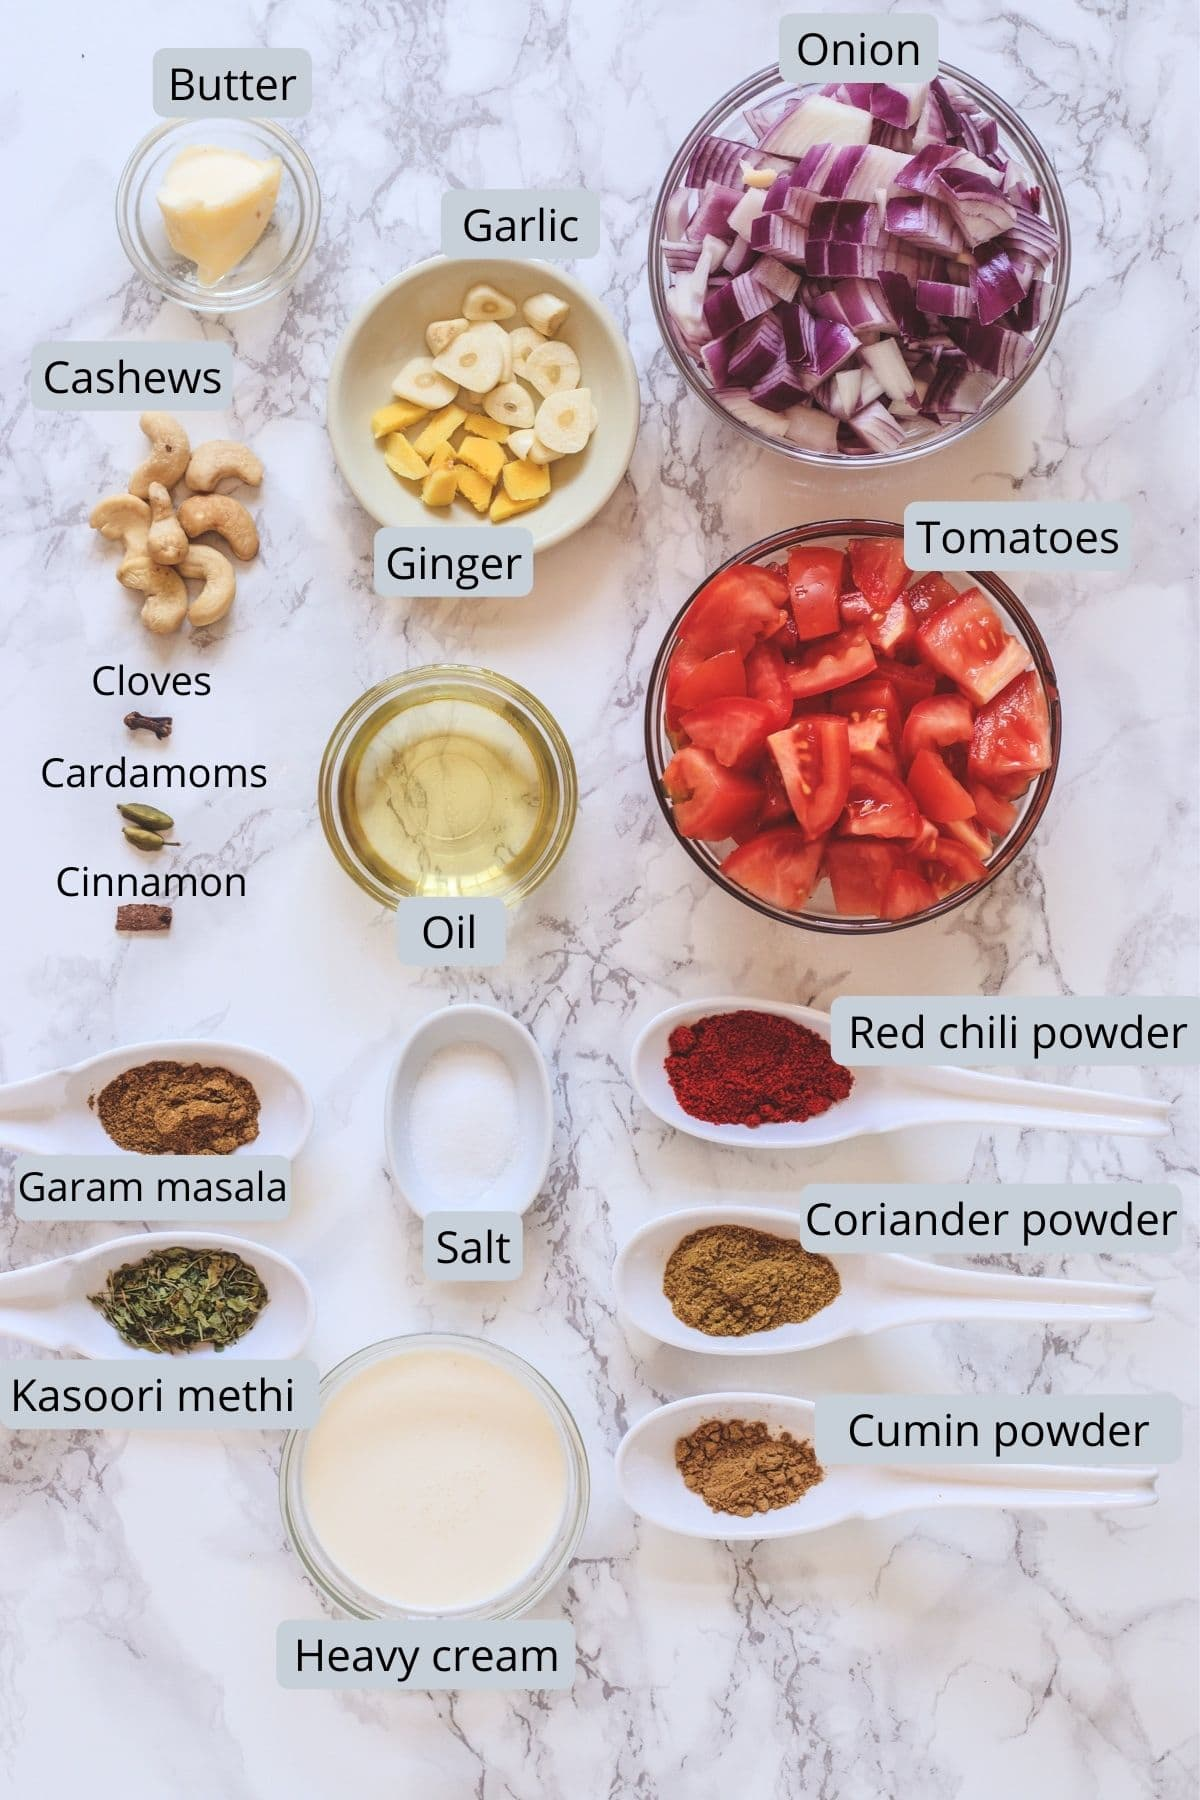 Ingredients used in the gravy includes onion, tomato, ginger, garlic, whole spices, cashews, oil, butter, salt, spice powders and cream